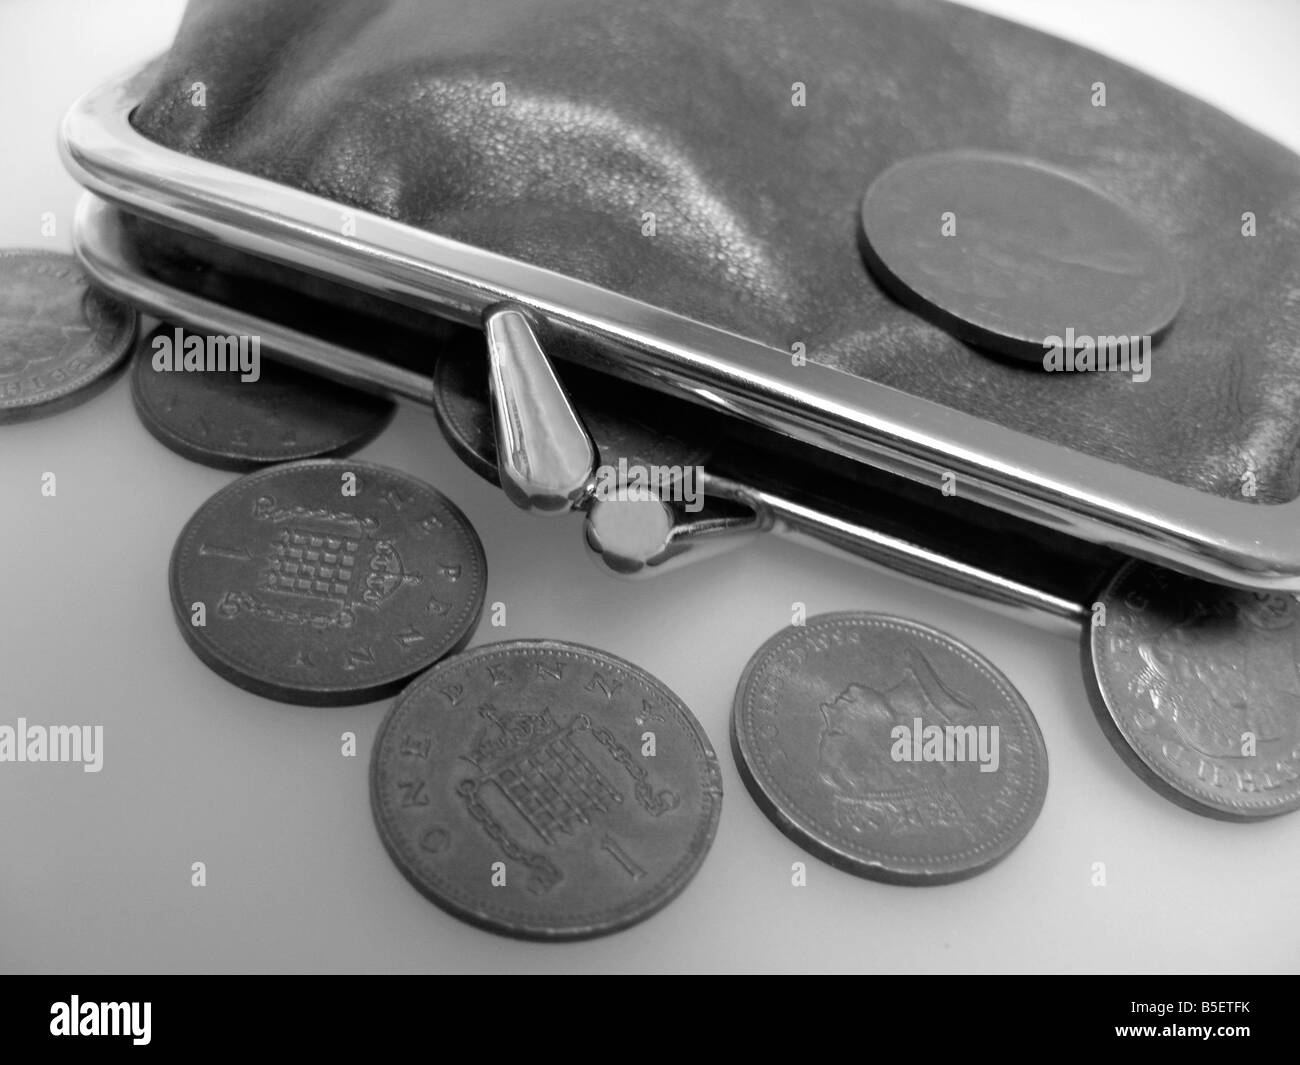 battered old purse with coins in the credit crunch hardship times - Stock Image